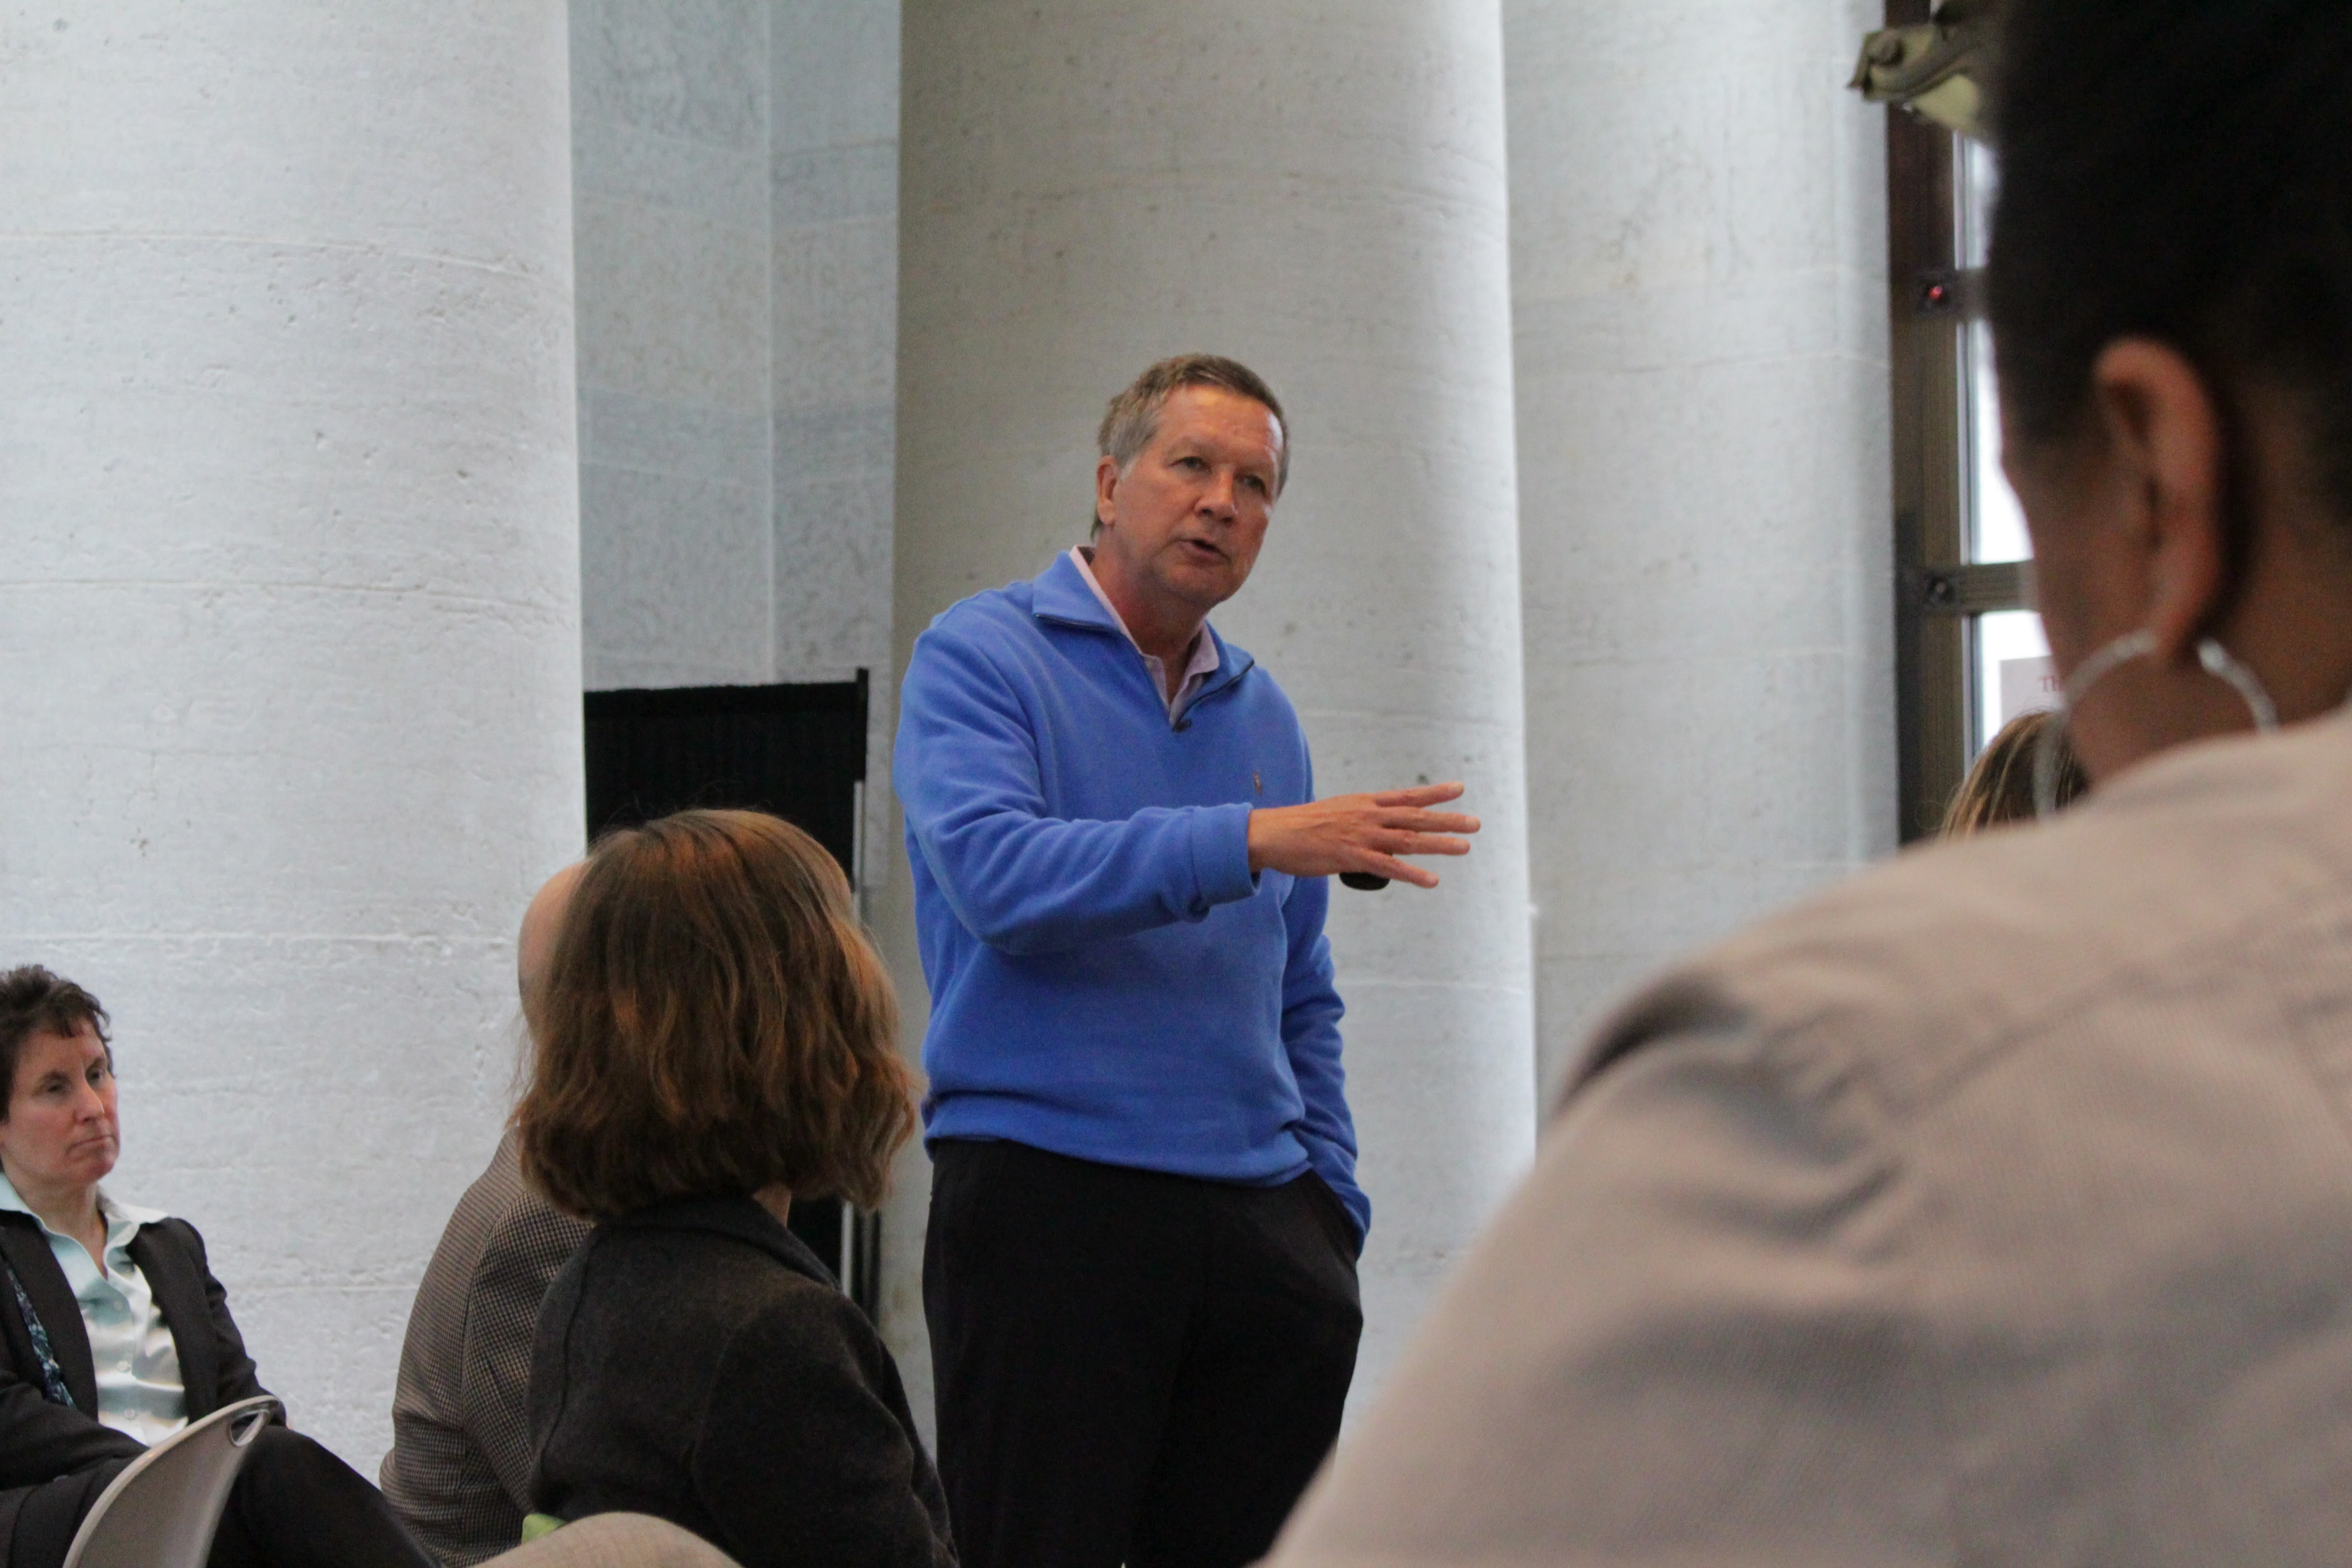 Governor Kasich spoke at the Ohio Statehouse to speak at an event discussing the opioid crisis in Ohio that was sponsored by Ohio State as a part of National Public Health Week on Thursday, April 6 Credit: Hailey Stangebye | Lantern reporter